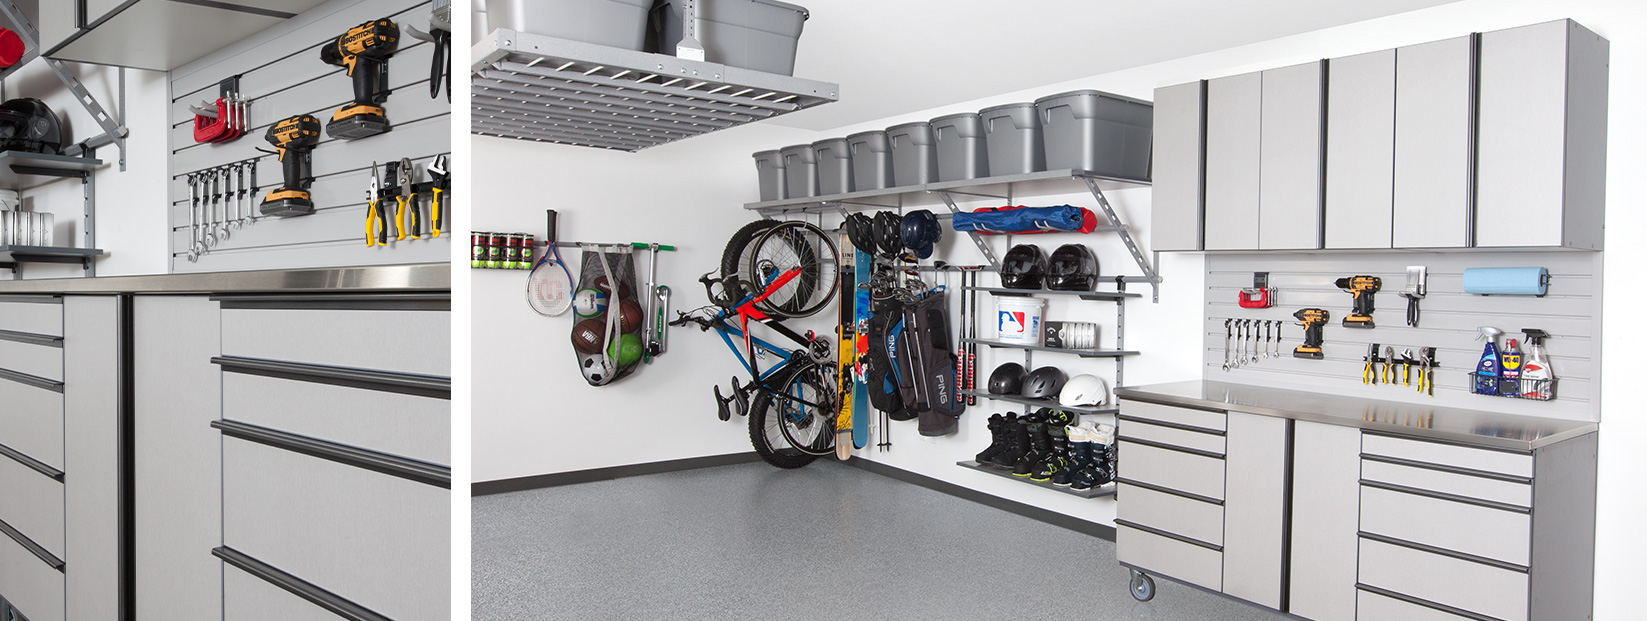 Excellent Shed Plans Secures Both Your Tools And Your Progress